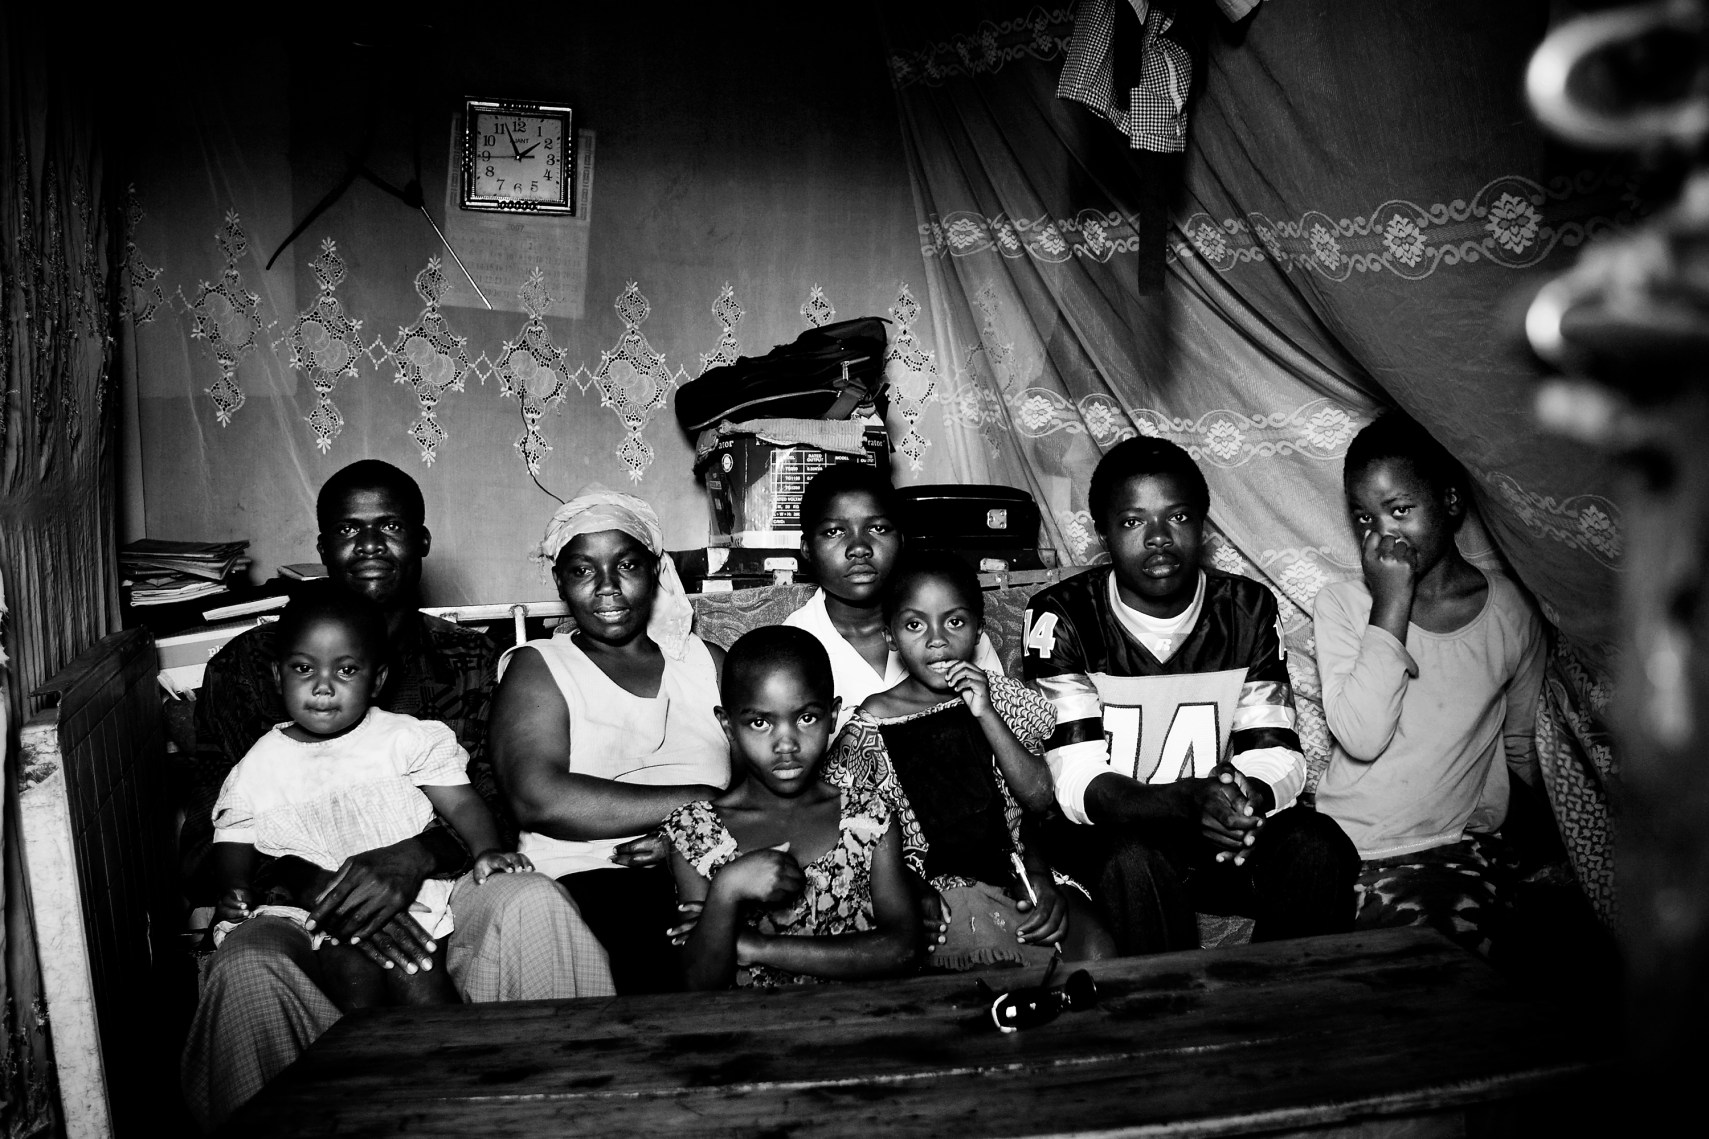 The Odongo Family in the stick and mud house. From left to right it is Augustin Odongo with Michelle, Clarissa Adiambo, Cynthia, Lavenda, Naomi, Meshak and Eunice.